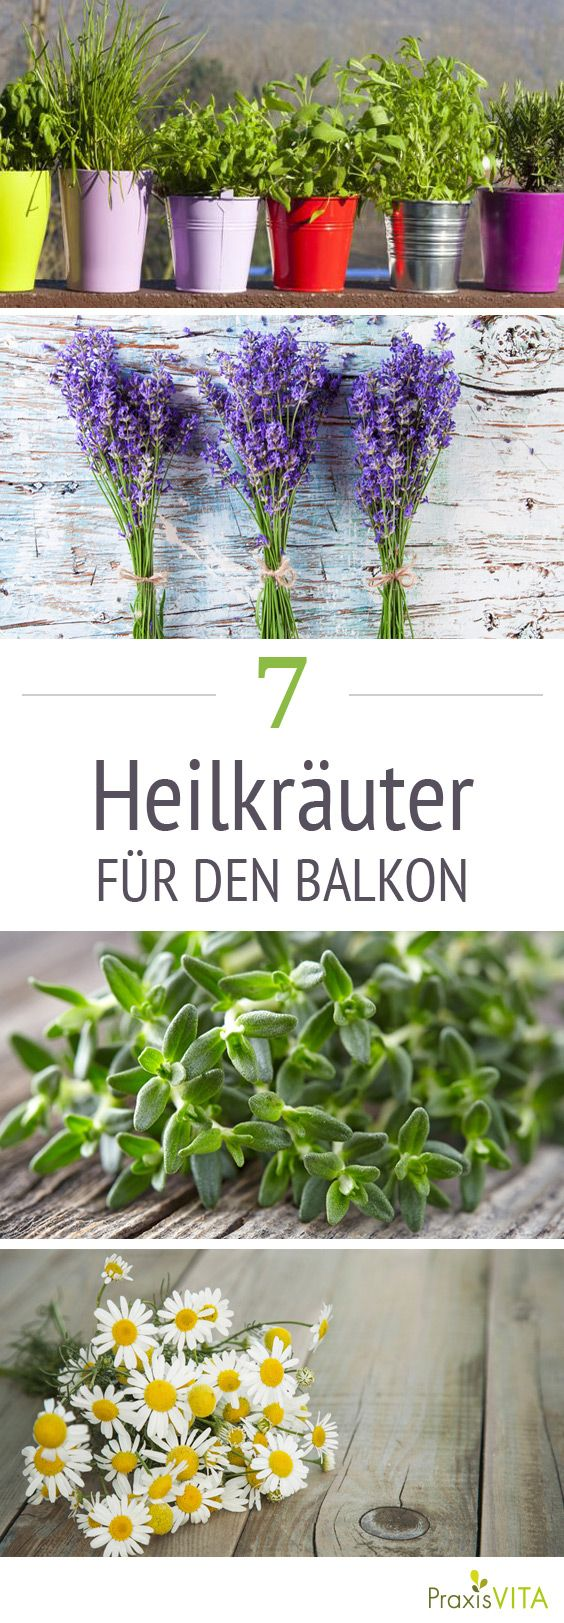 die 7 besten heilkr uter f r den balkon gardening pinterest garten balkon und kraut. Black Bedroom Furniture Sets. Home Design Ideas